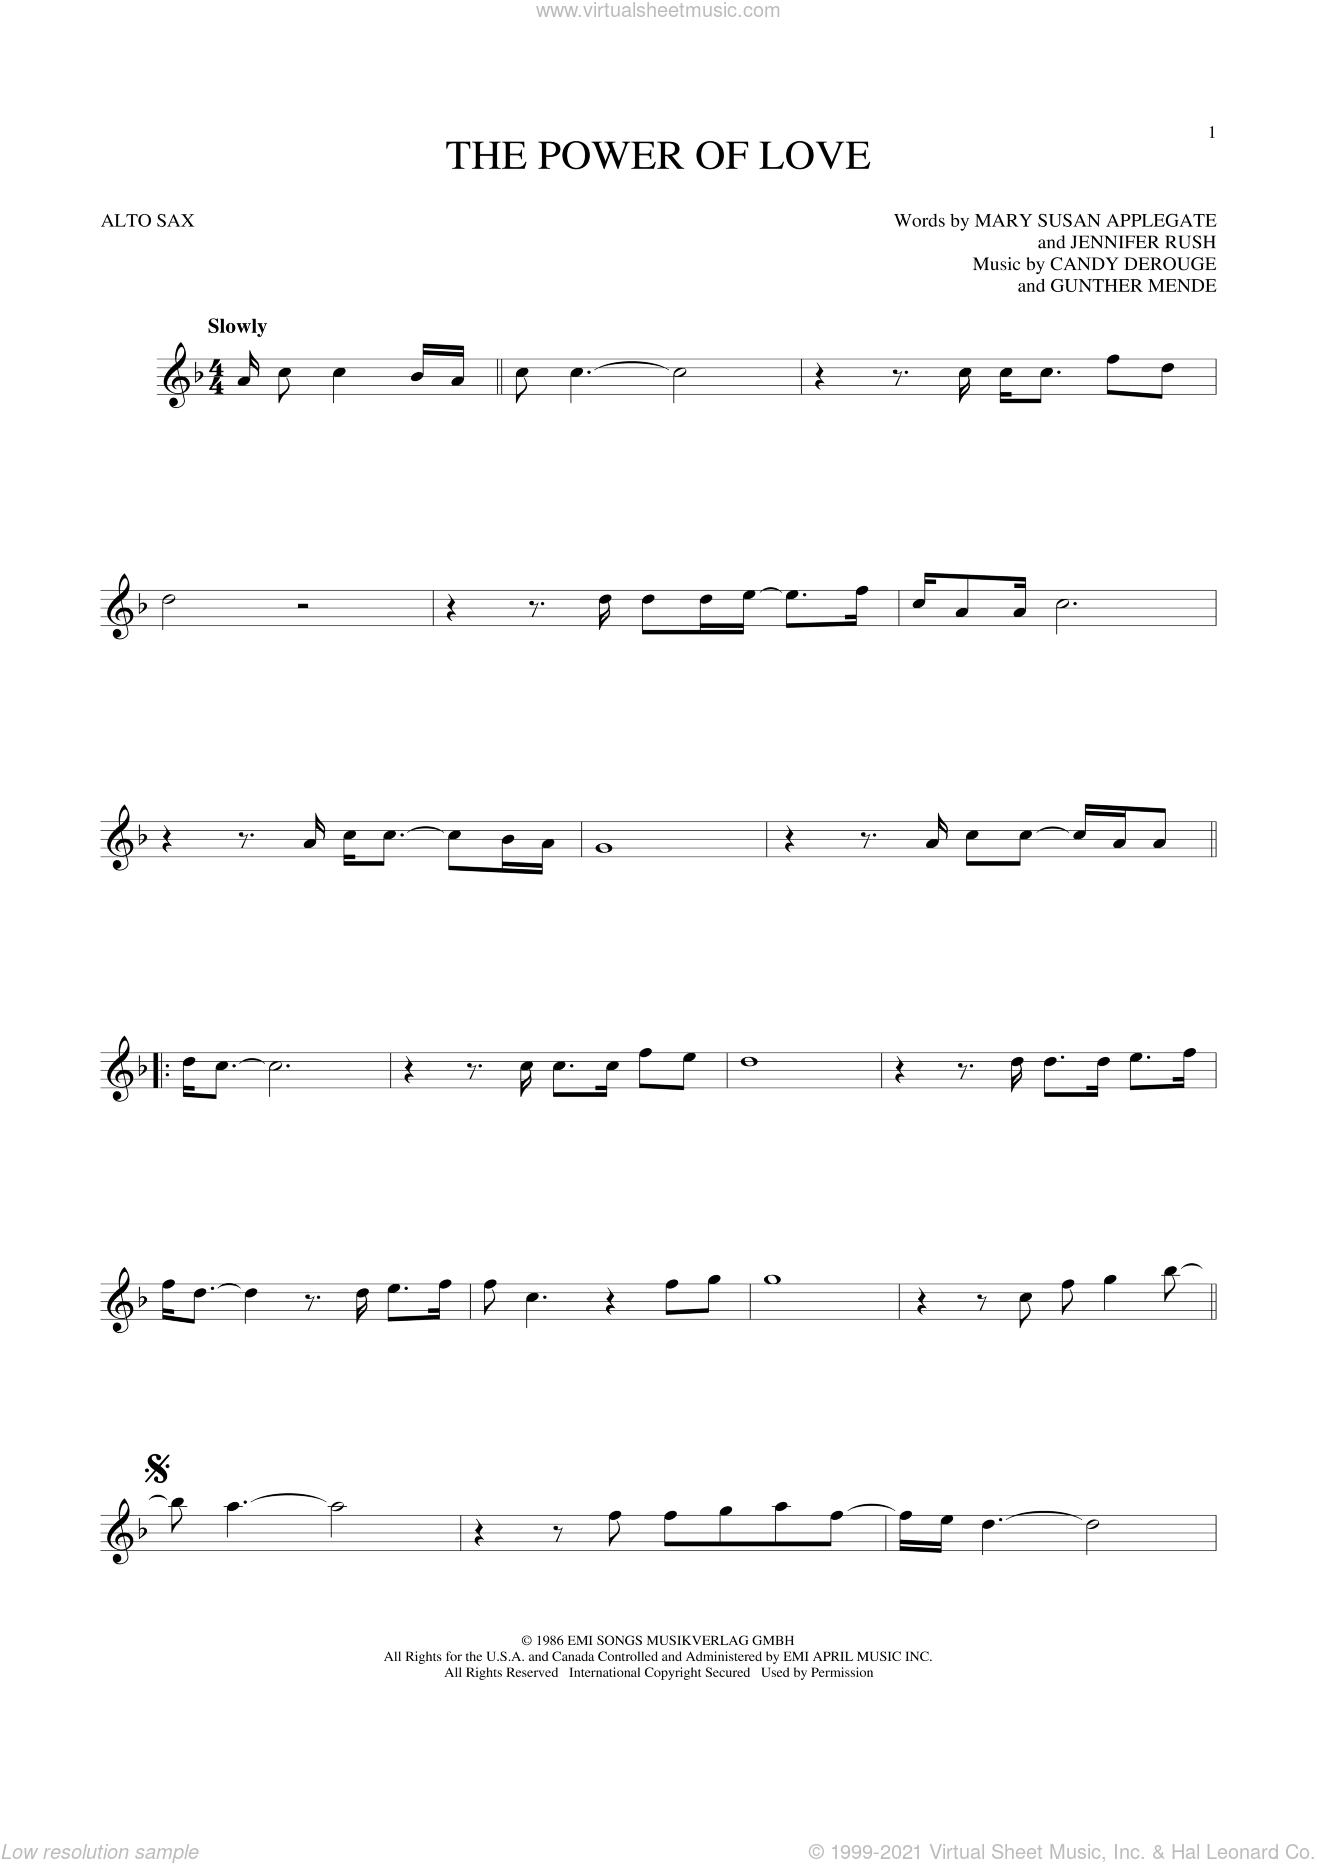 The Power Of Love sheet music for alto saxophone solo ( Sax) by Mary Susan Applegate, Air Supply, Celine Dion, Candy Derouge and Jennifer Rush. Score Image Preview.